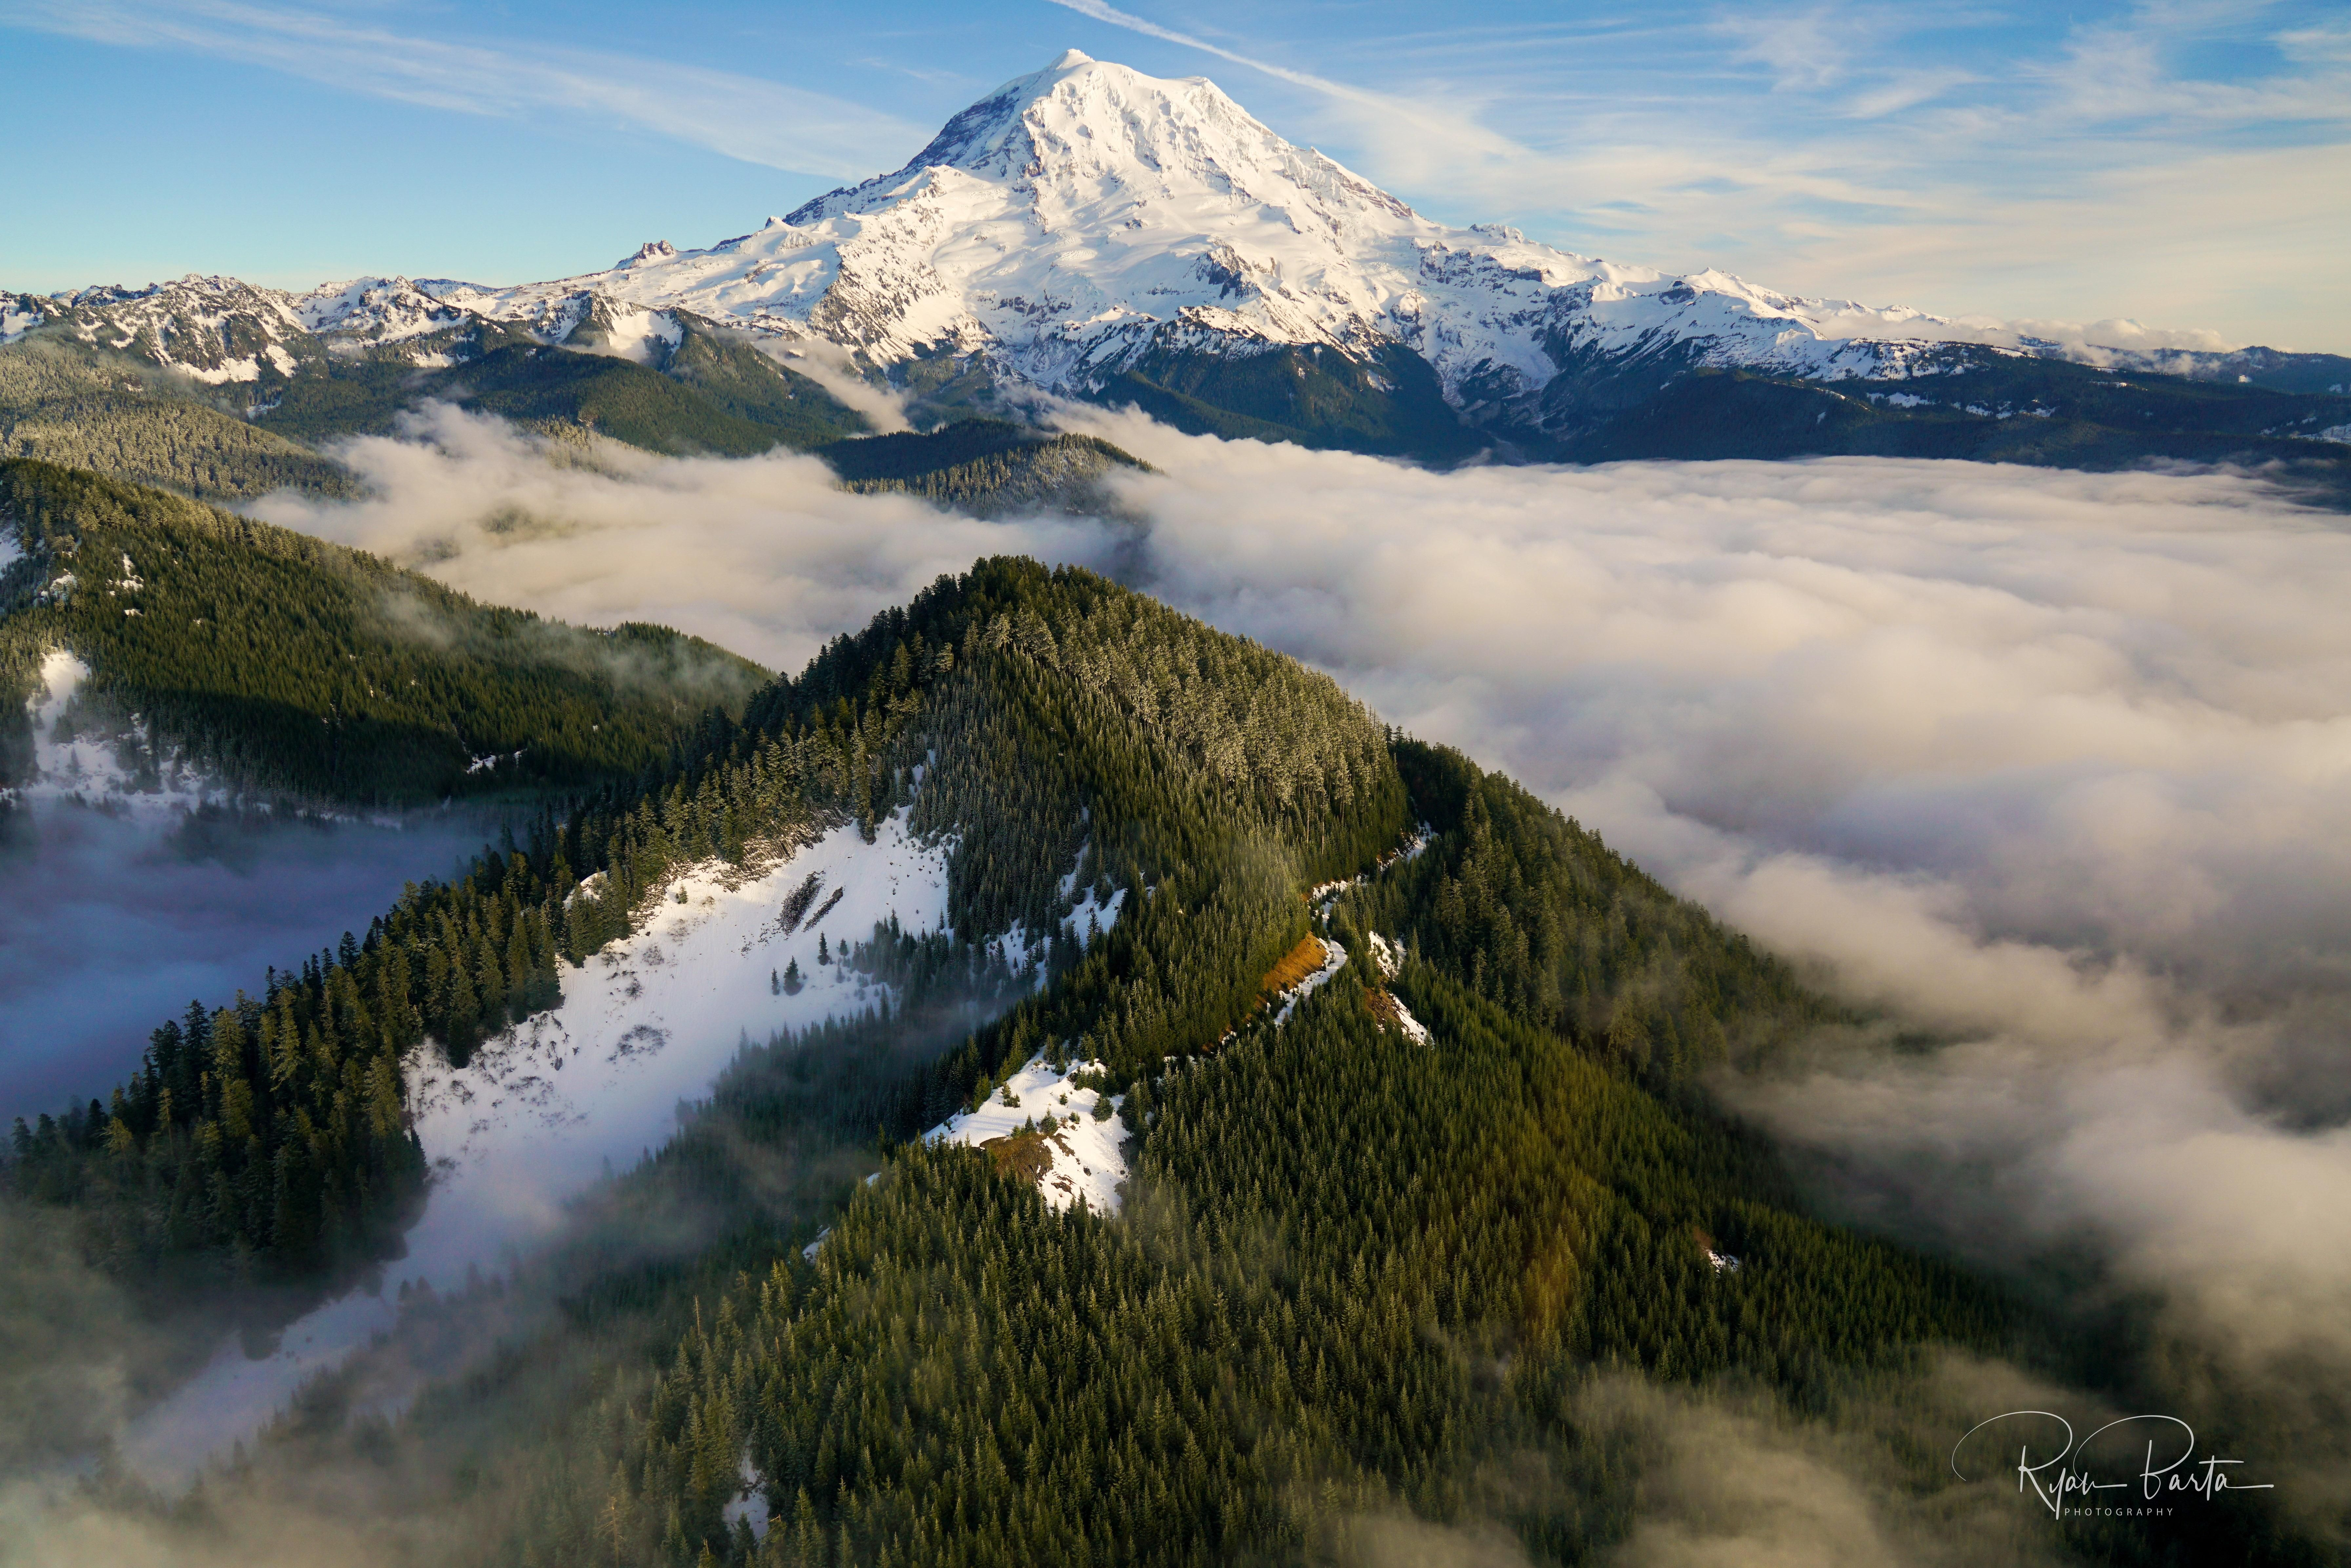 Mt Rainier u is more prominent than K Photo taken from an